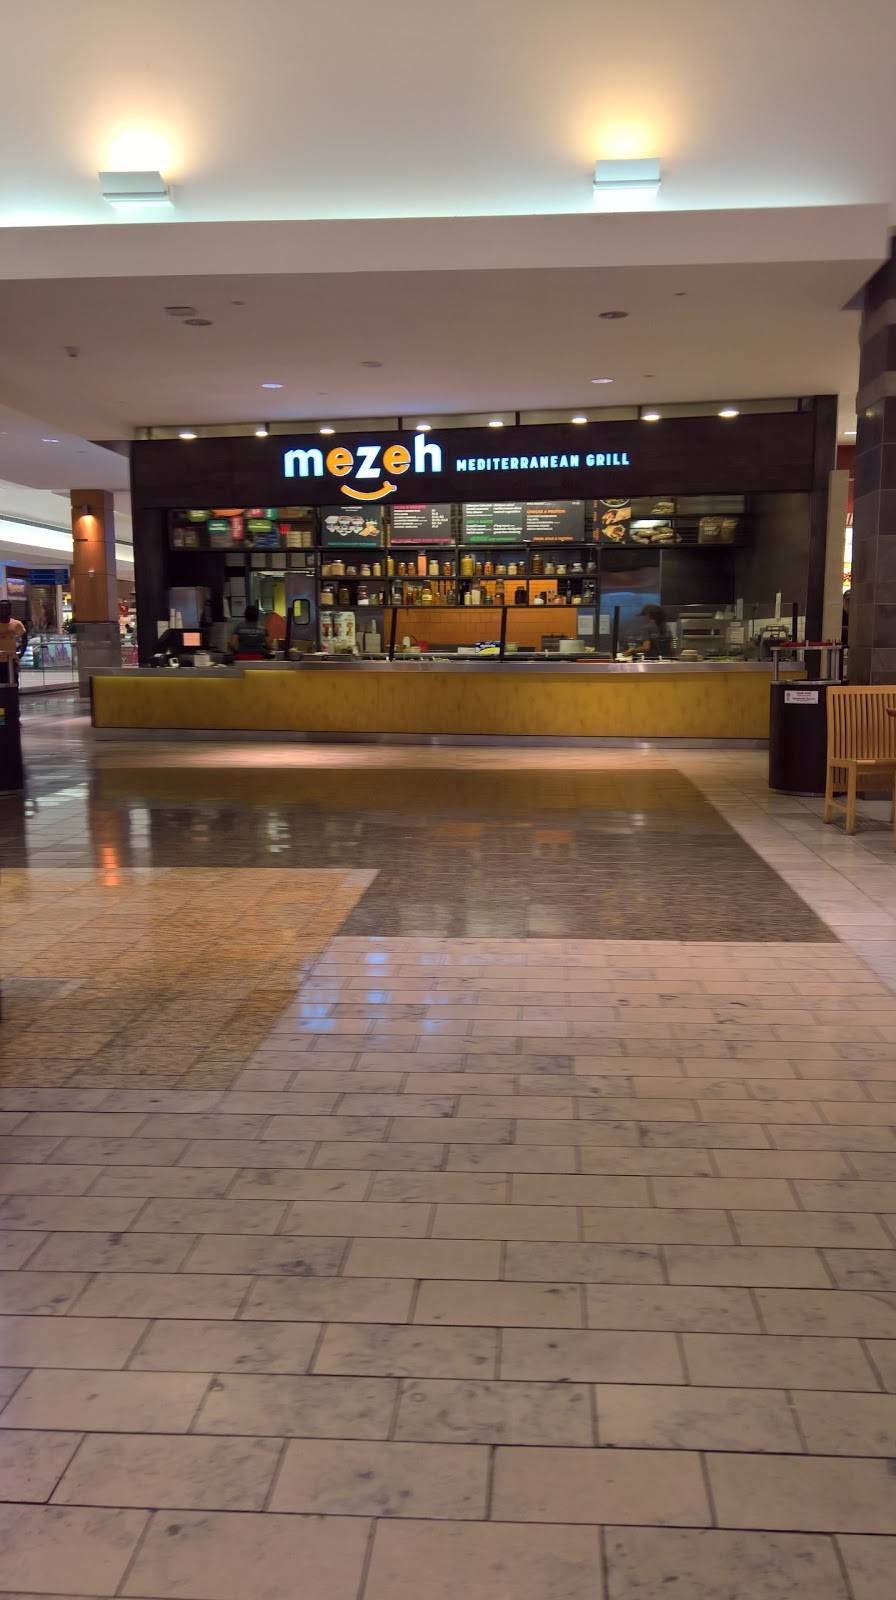 Mezeh Mediterranean Grill (Wheaton) | restaurant | 11160 Veirs Mill Rd, Silver Spring, MD 20902, USA | 3019420005 OR +1 301-942-0005